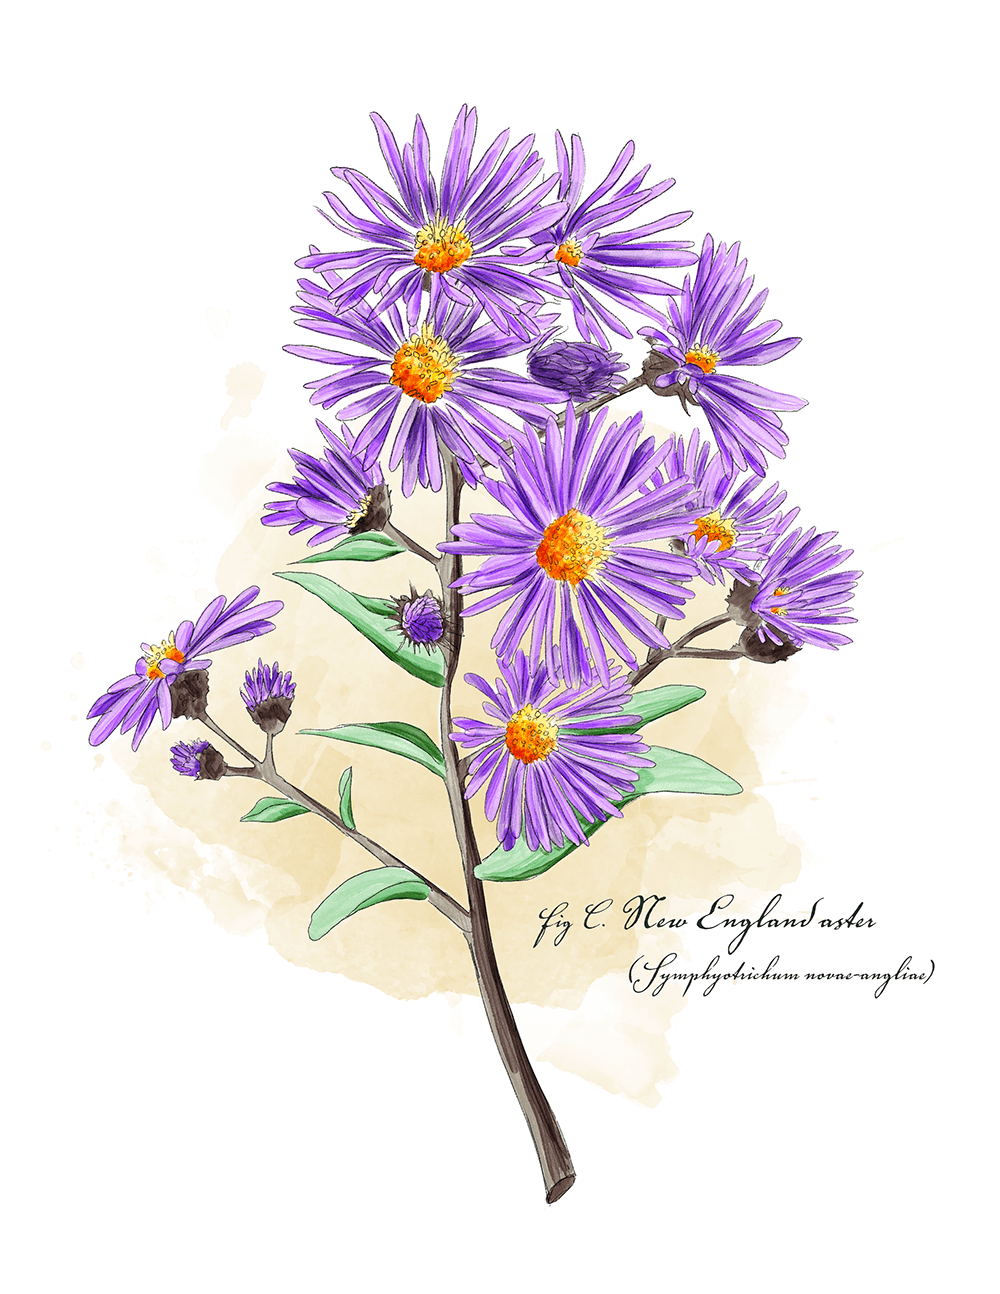 New England Aster, one of many pollnator friendly plants that can makeup a pollinator garden. All illustrations are of potentila plant species for pollinators.